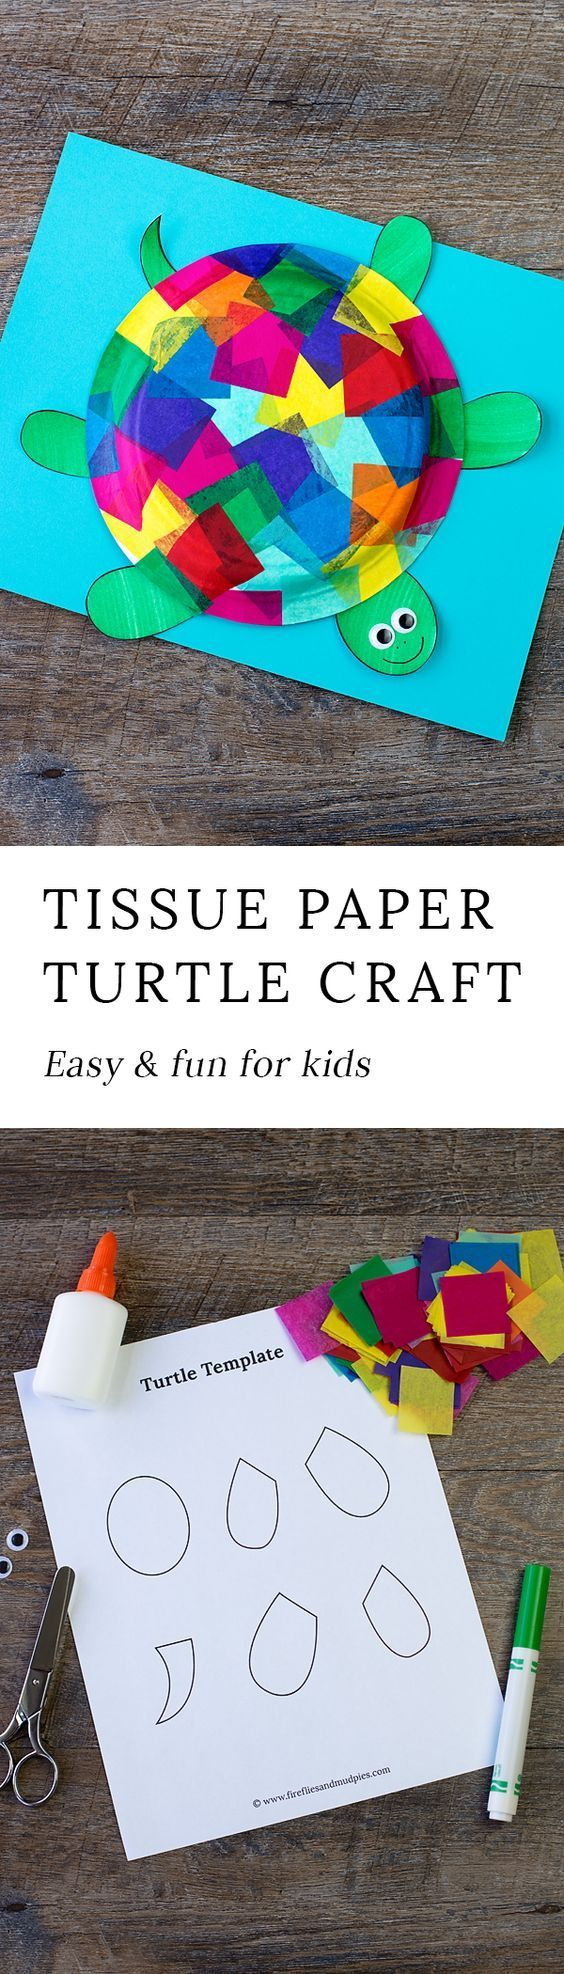 Tissue Paper and Paper Plate Turtle Craft - #Craft #paper #Plate #Tissue #Turtle #schoolstyle